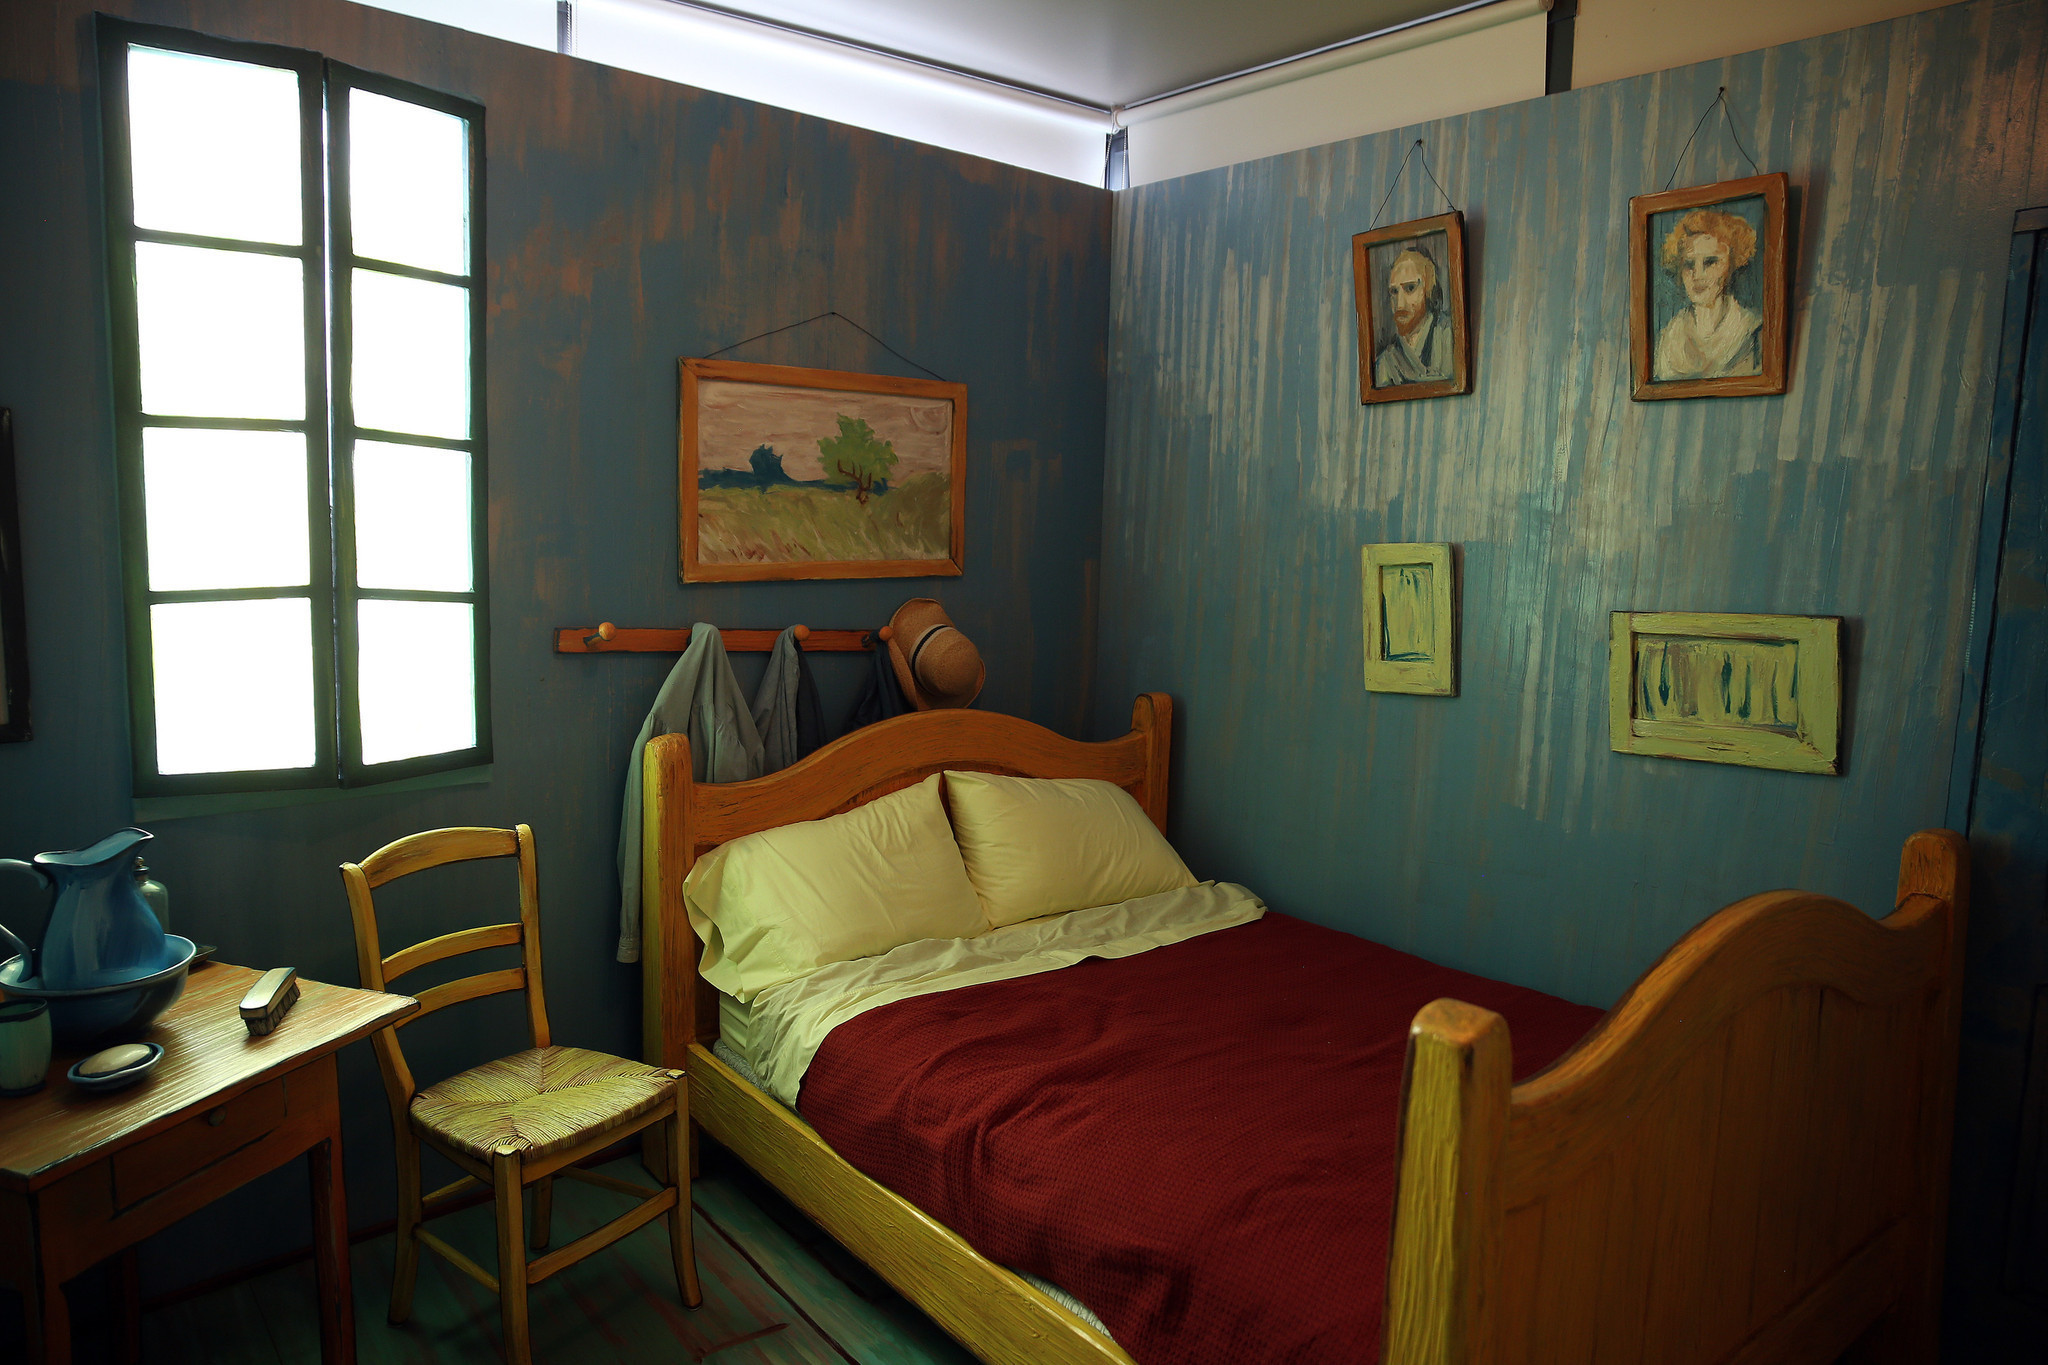 No Starry Night, But A Comfy Double Bed In Van Gogh's